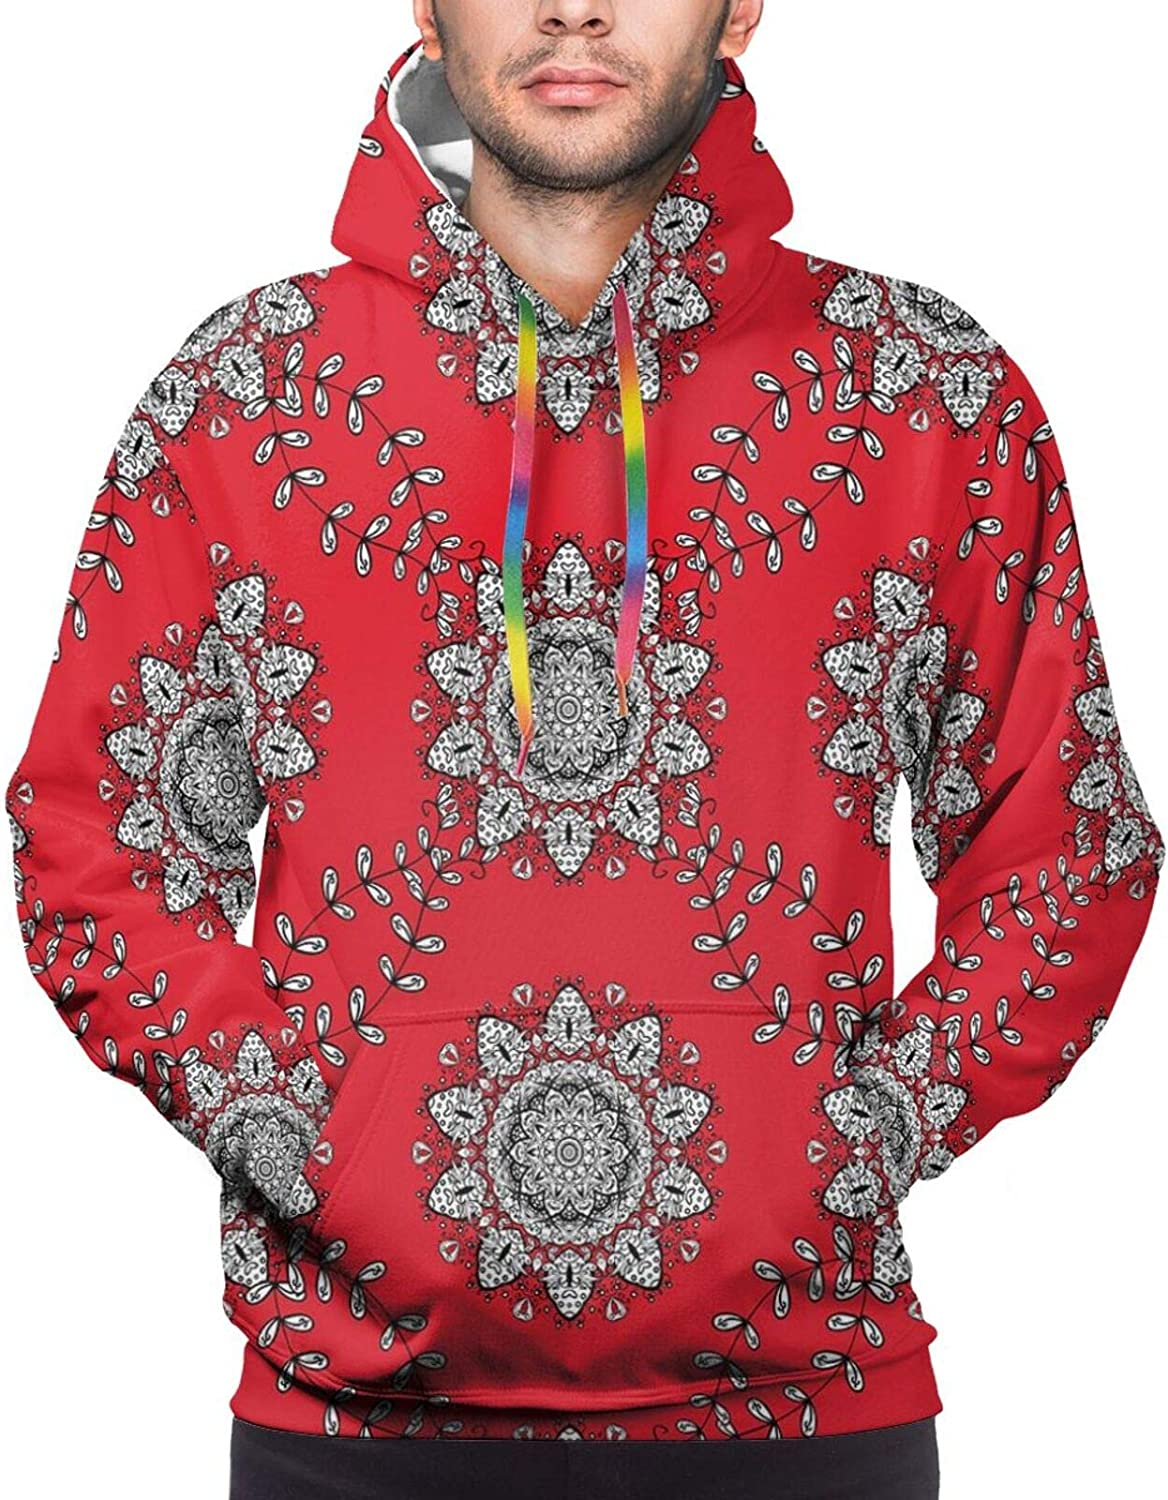 Men's Hoodies Sweatshirts,Sketchy Hand Drawn Print of Desert Plants with Mexican Travellers Image